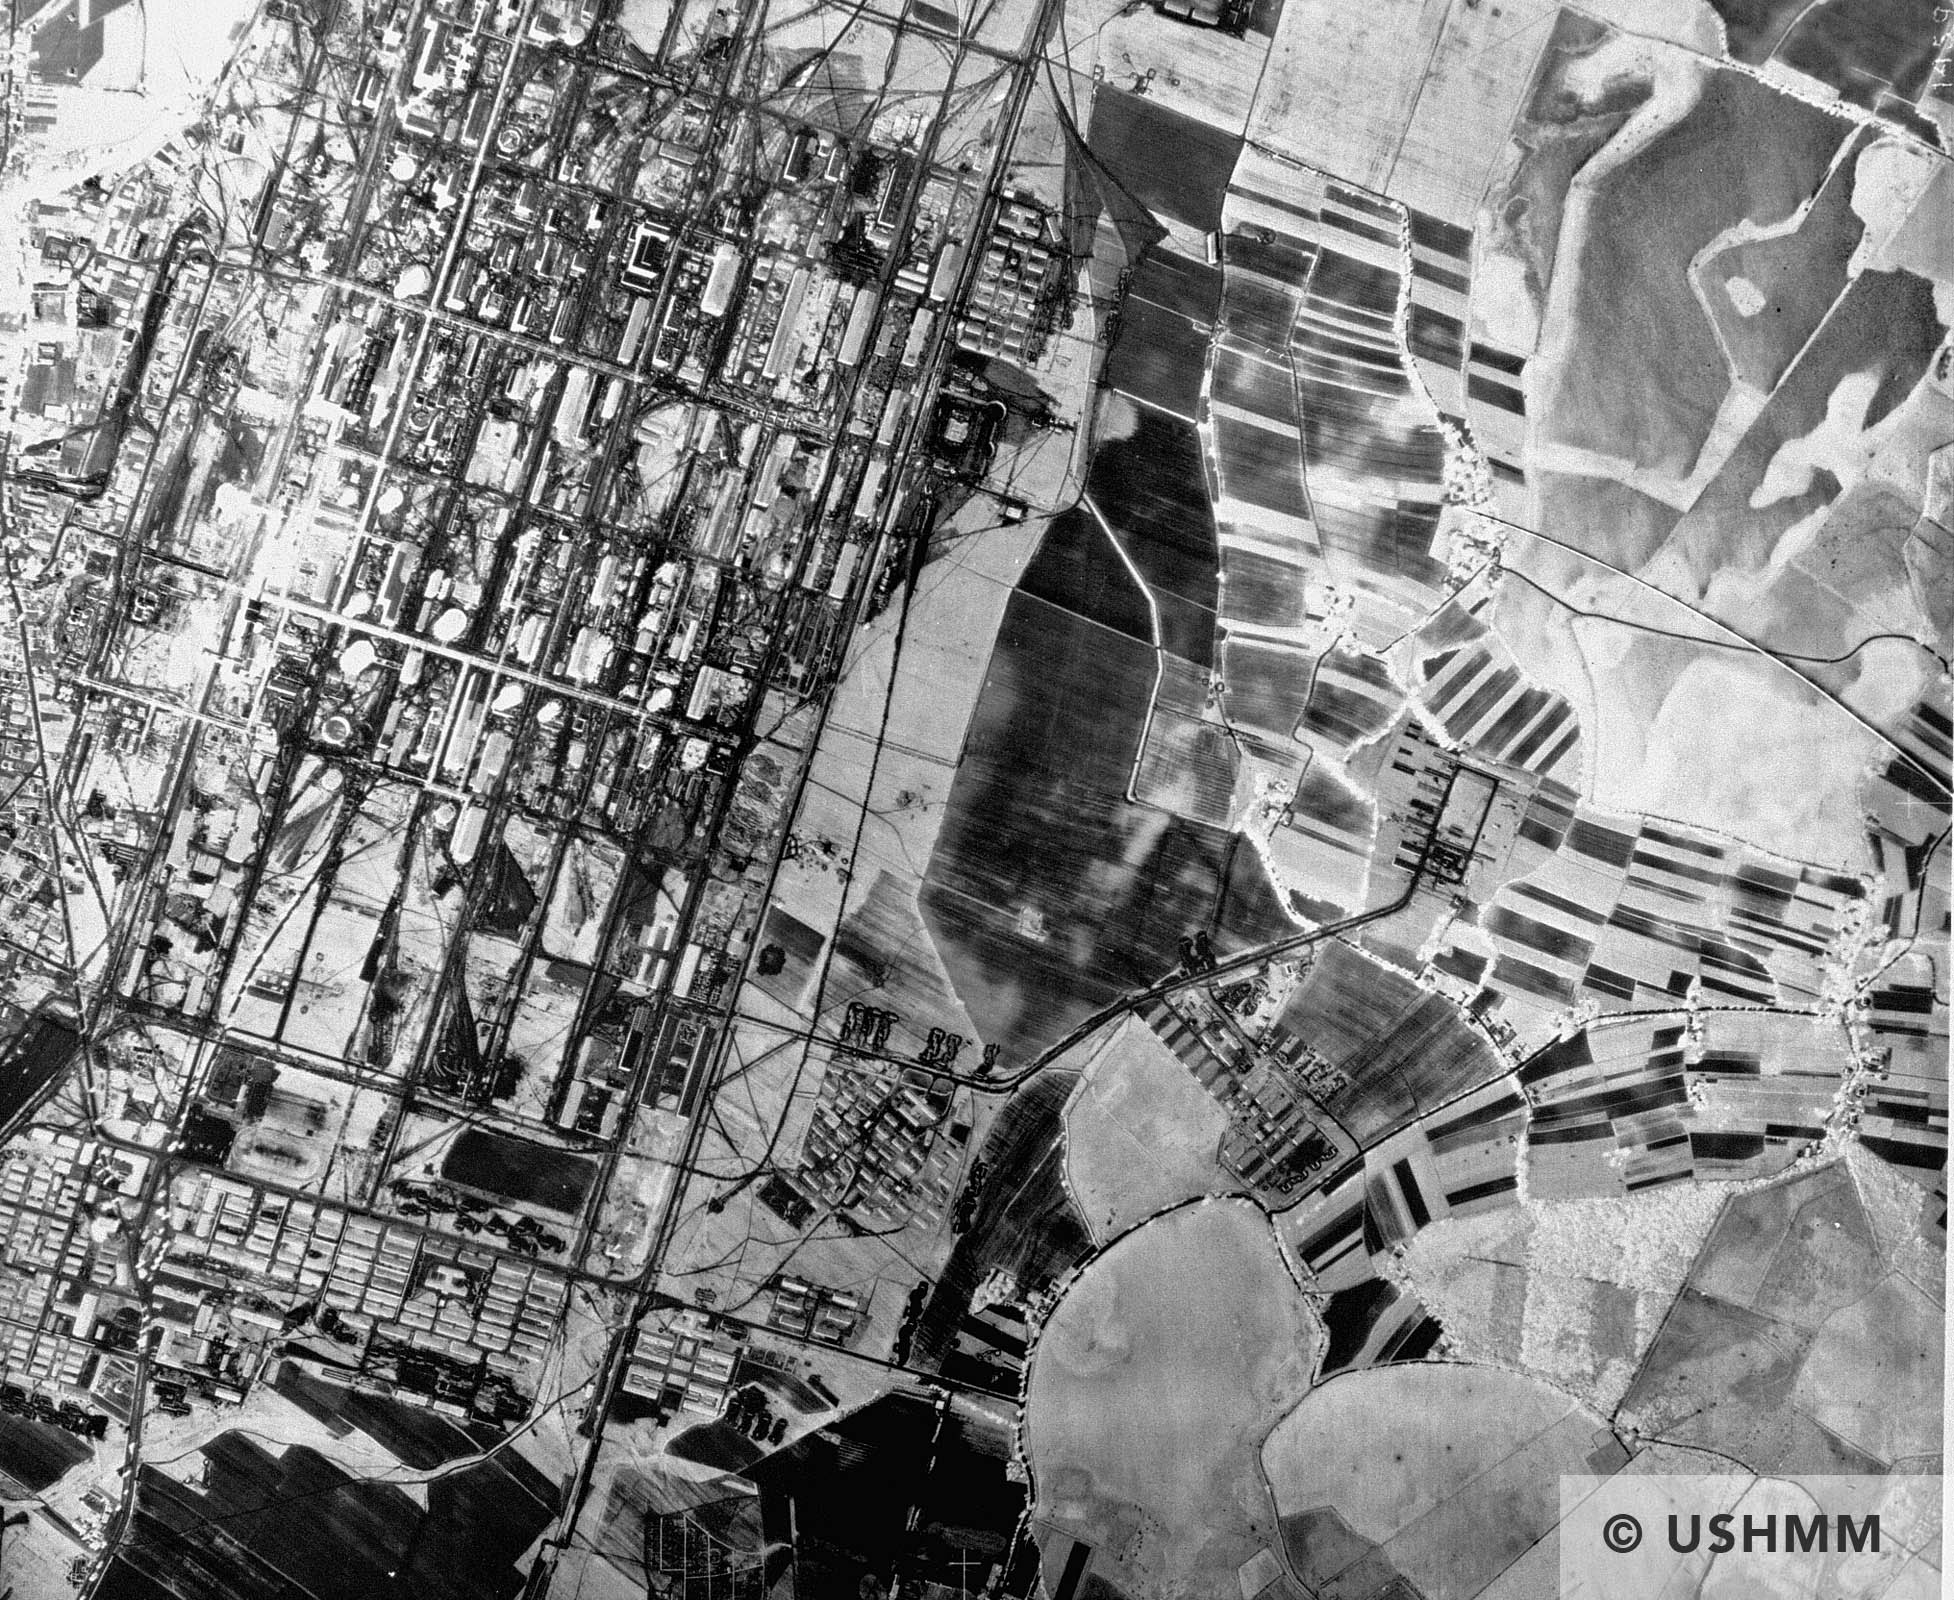 An aerial reconnaissance photograph showing the I.G. Farben Buna plant at Auschwitz with the Auschwitz III prisoners camp. April to August 1944 USHMM 04312